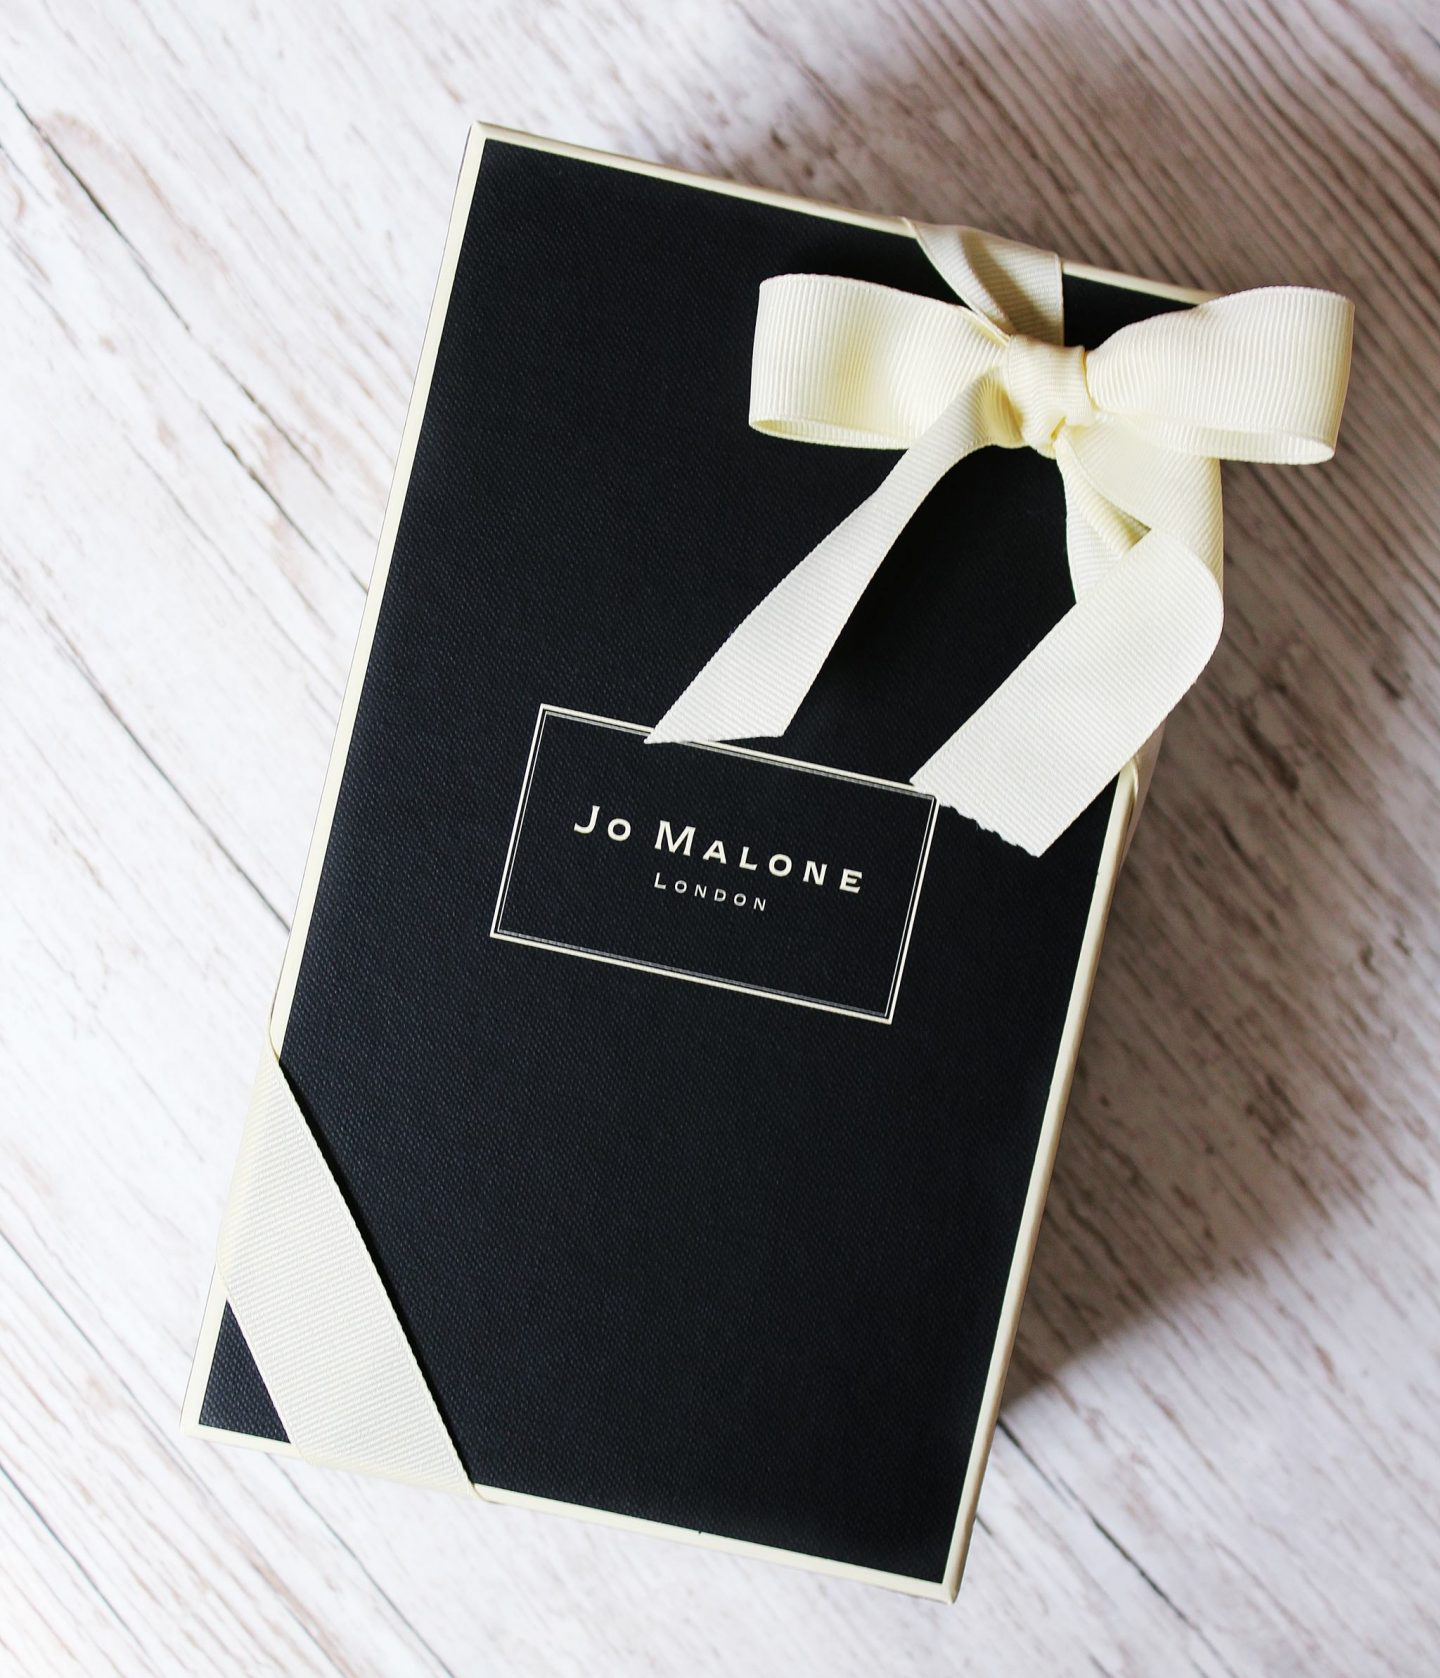 Jo Malone travel candle giveaway